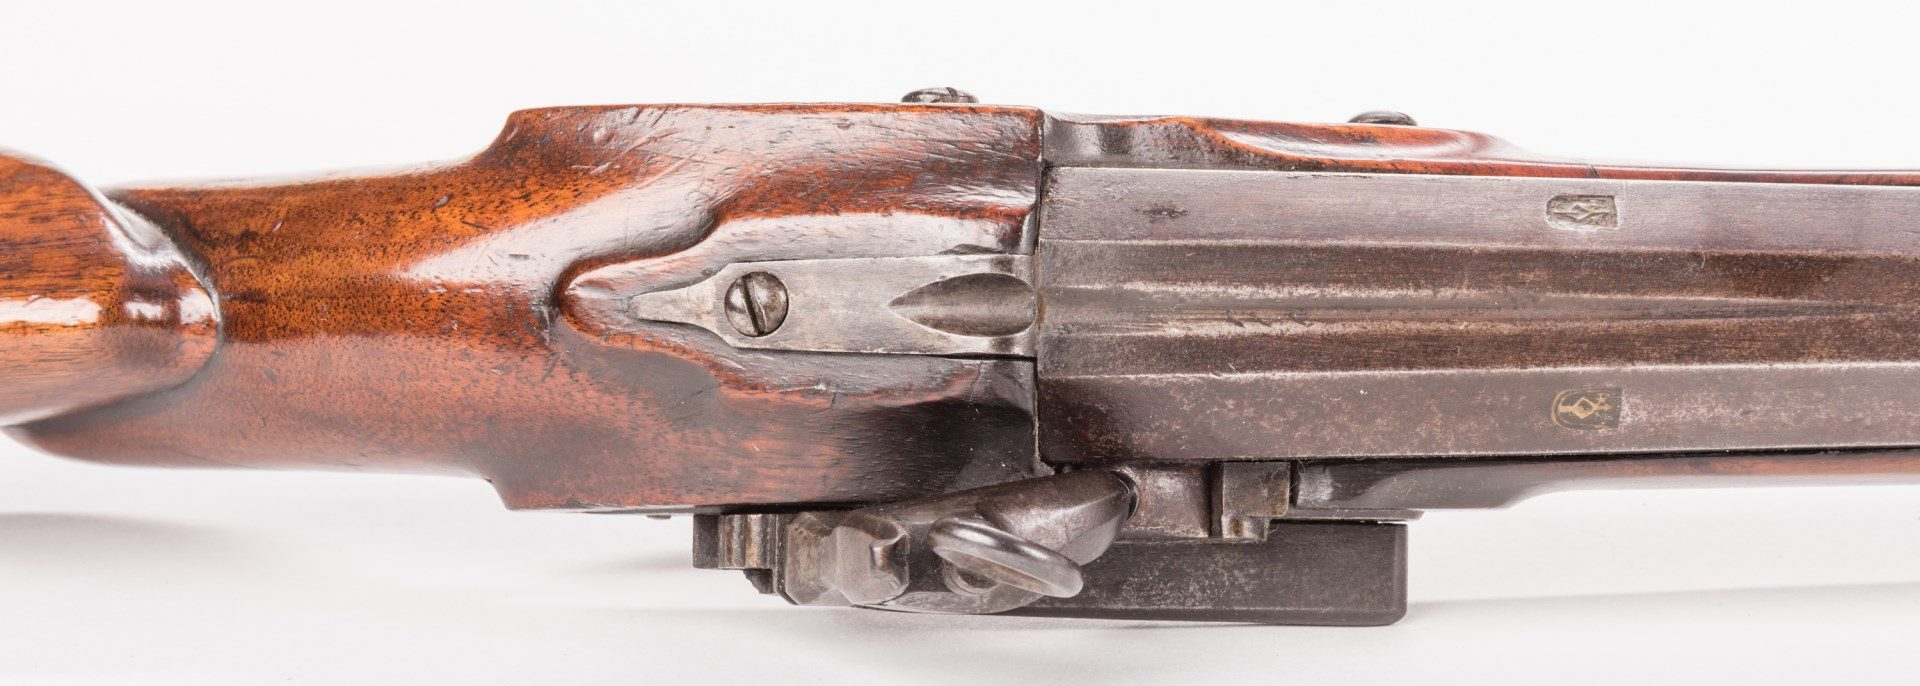 Lot 797: Spanish Miquelet Wall or Rampart Musket